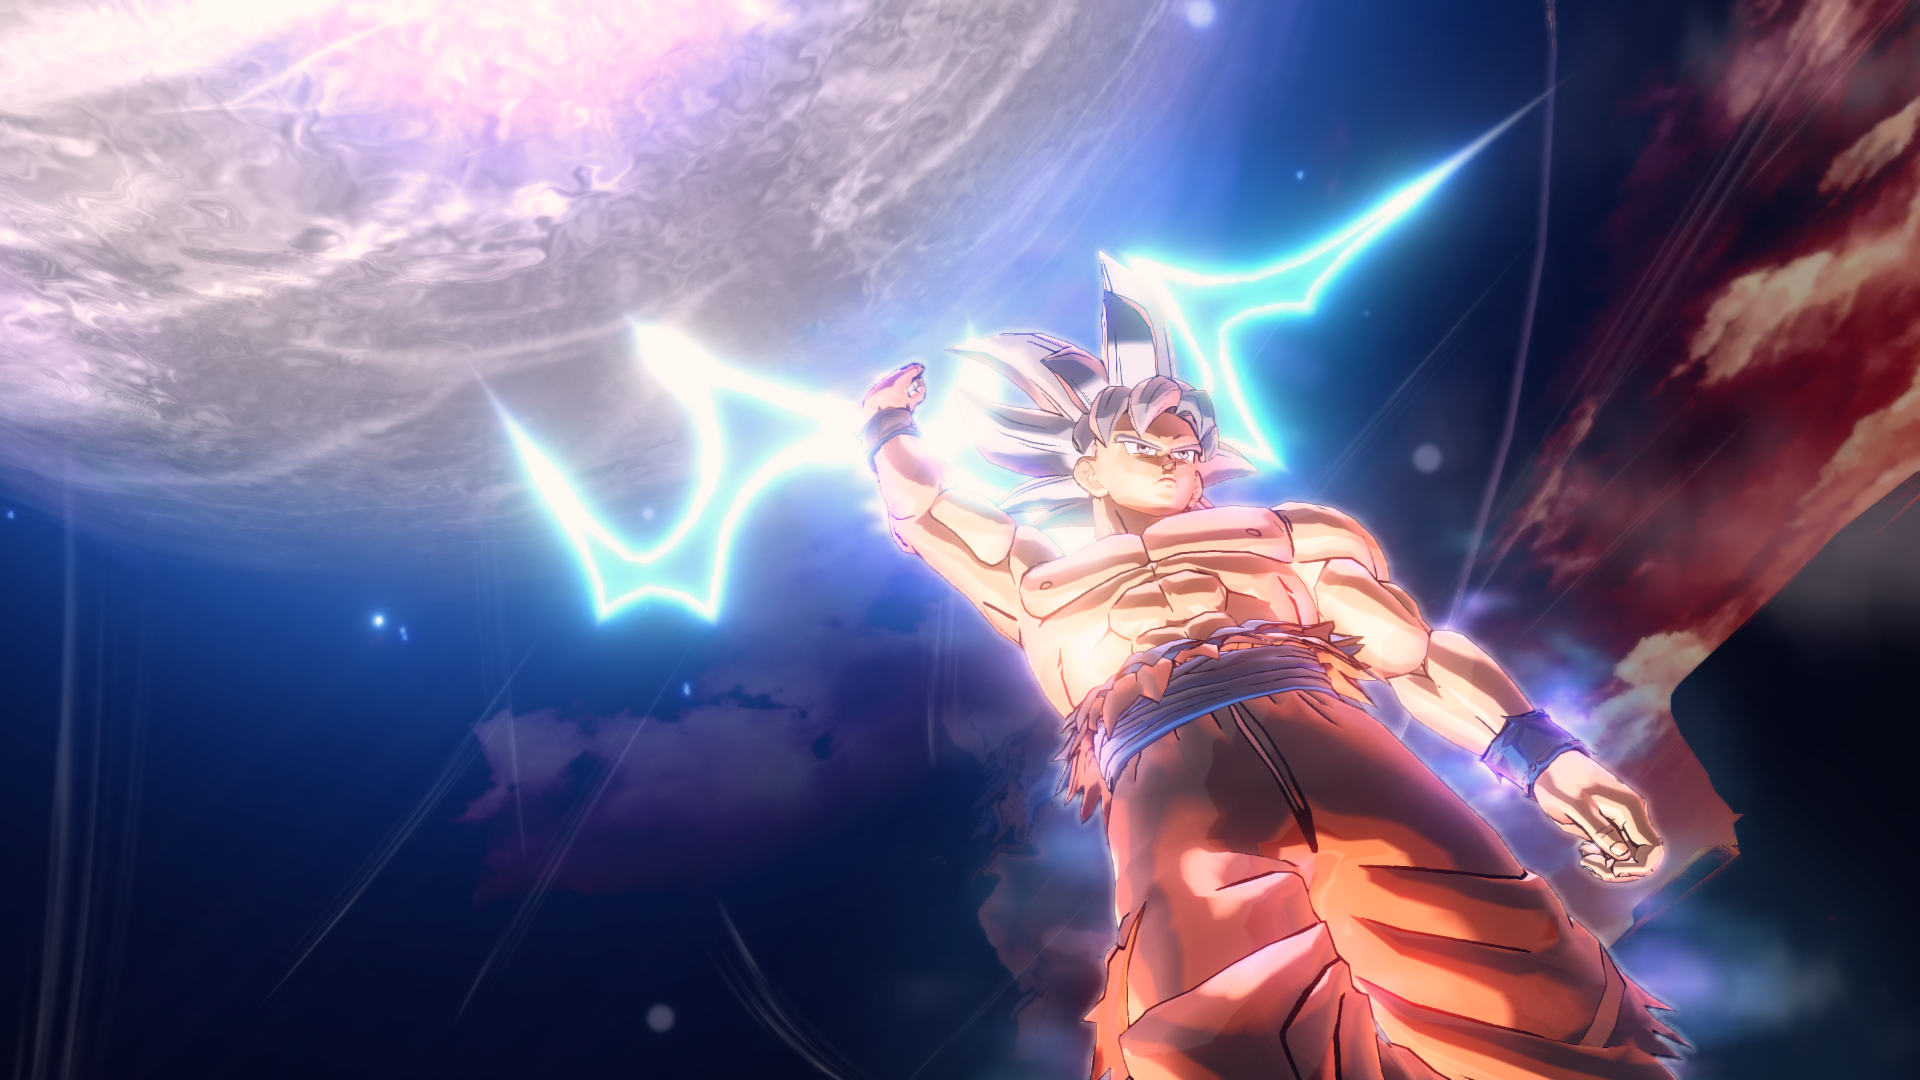 Dragon Ball Xenoverse 2 Dlc Trailer Shows Off Ultra Goku Ultra Instinct Fight 1544021 Hd Wallpaper Backgrounds Download